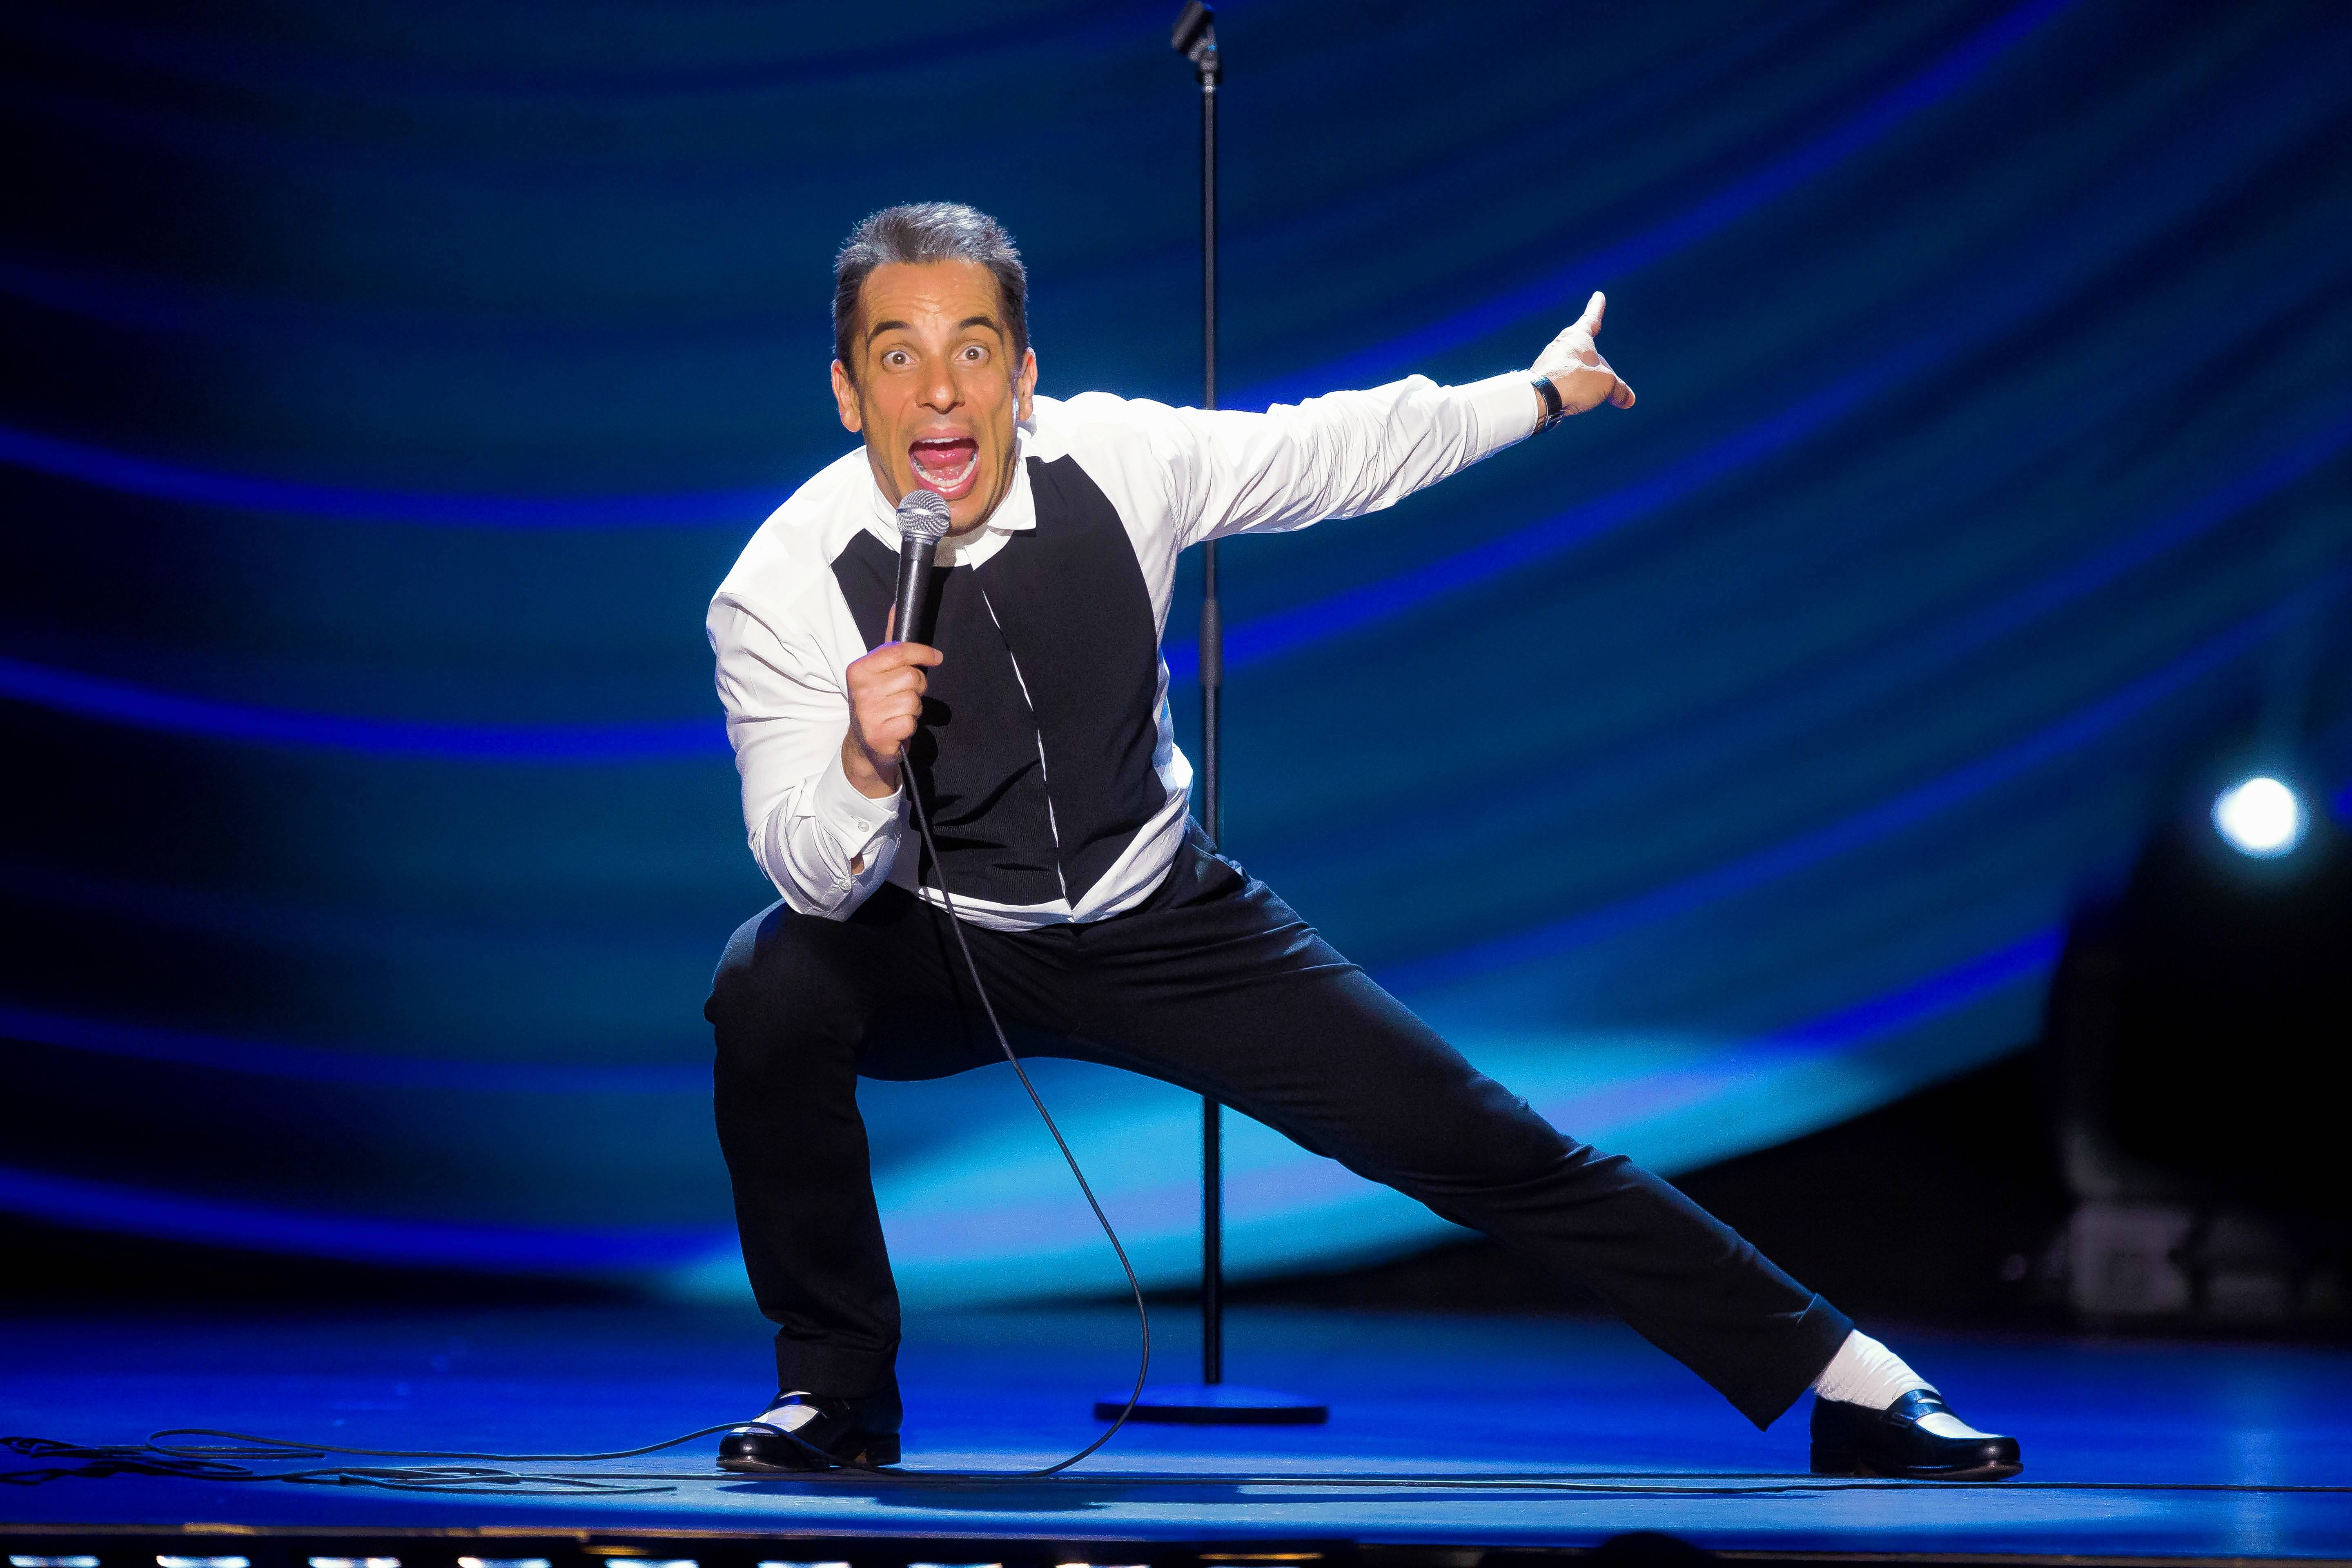 Comedian Sebastian Maniscalco will perform on Saturday, March 10, at the Rosemont Theatre.